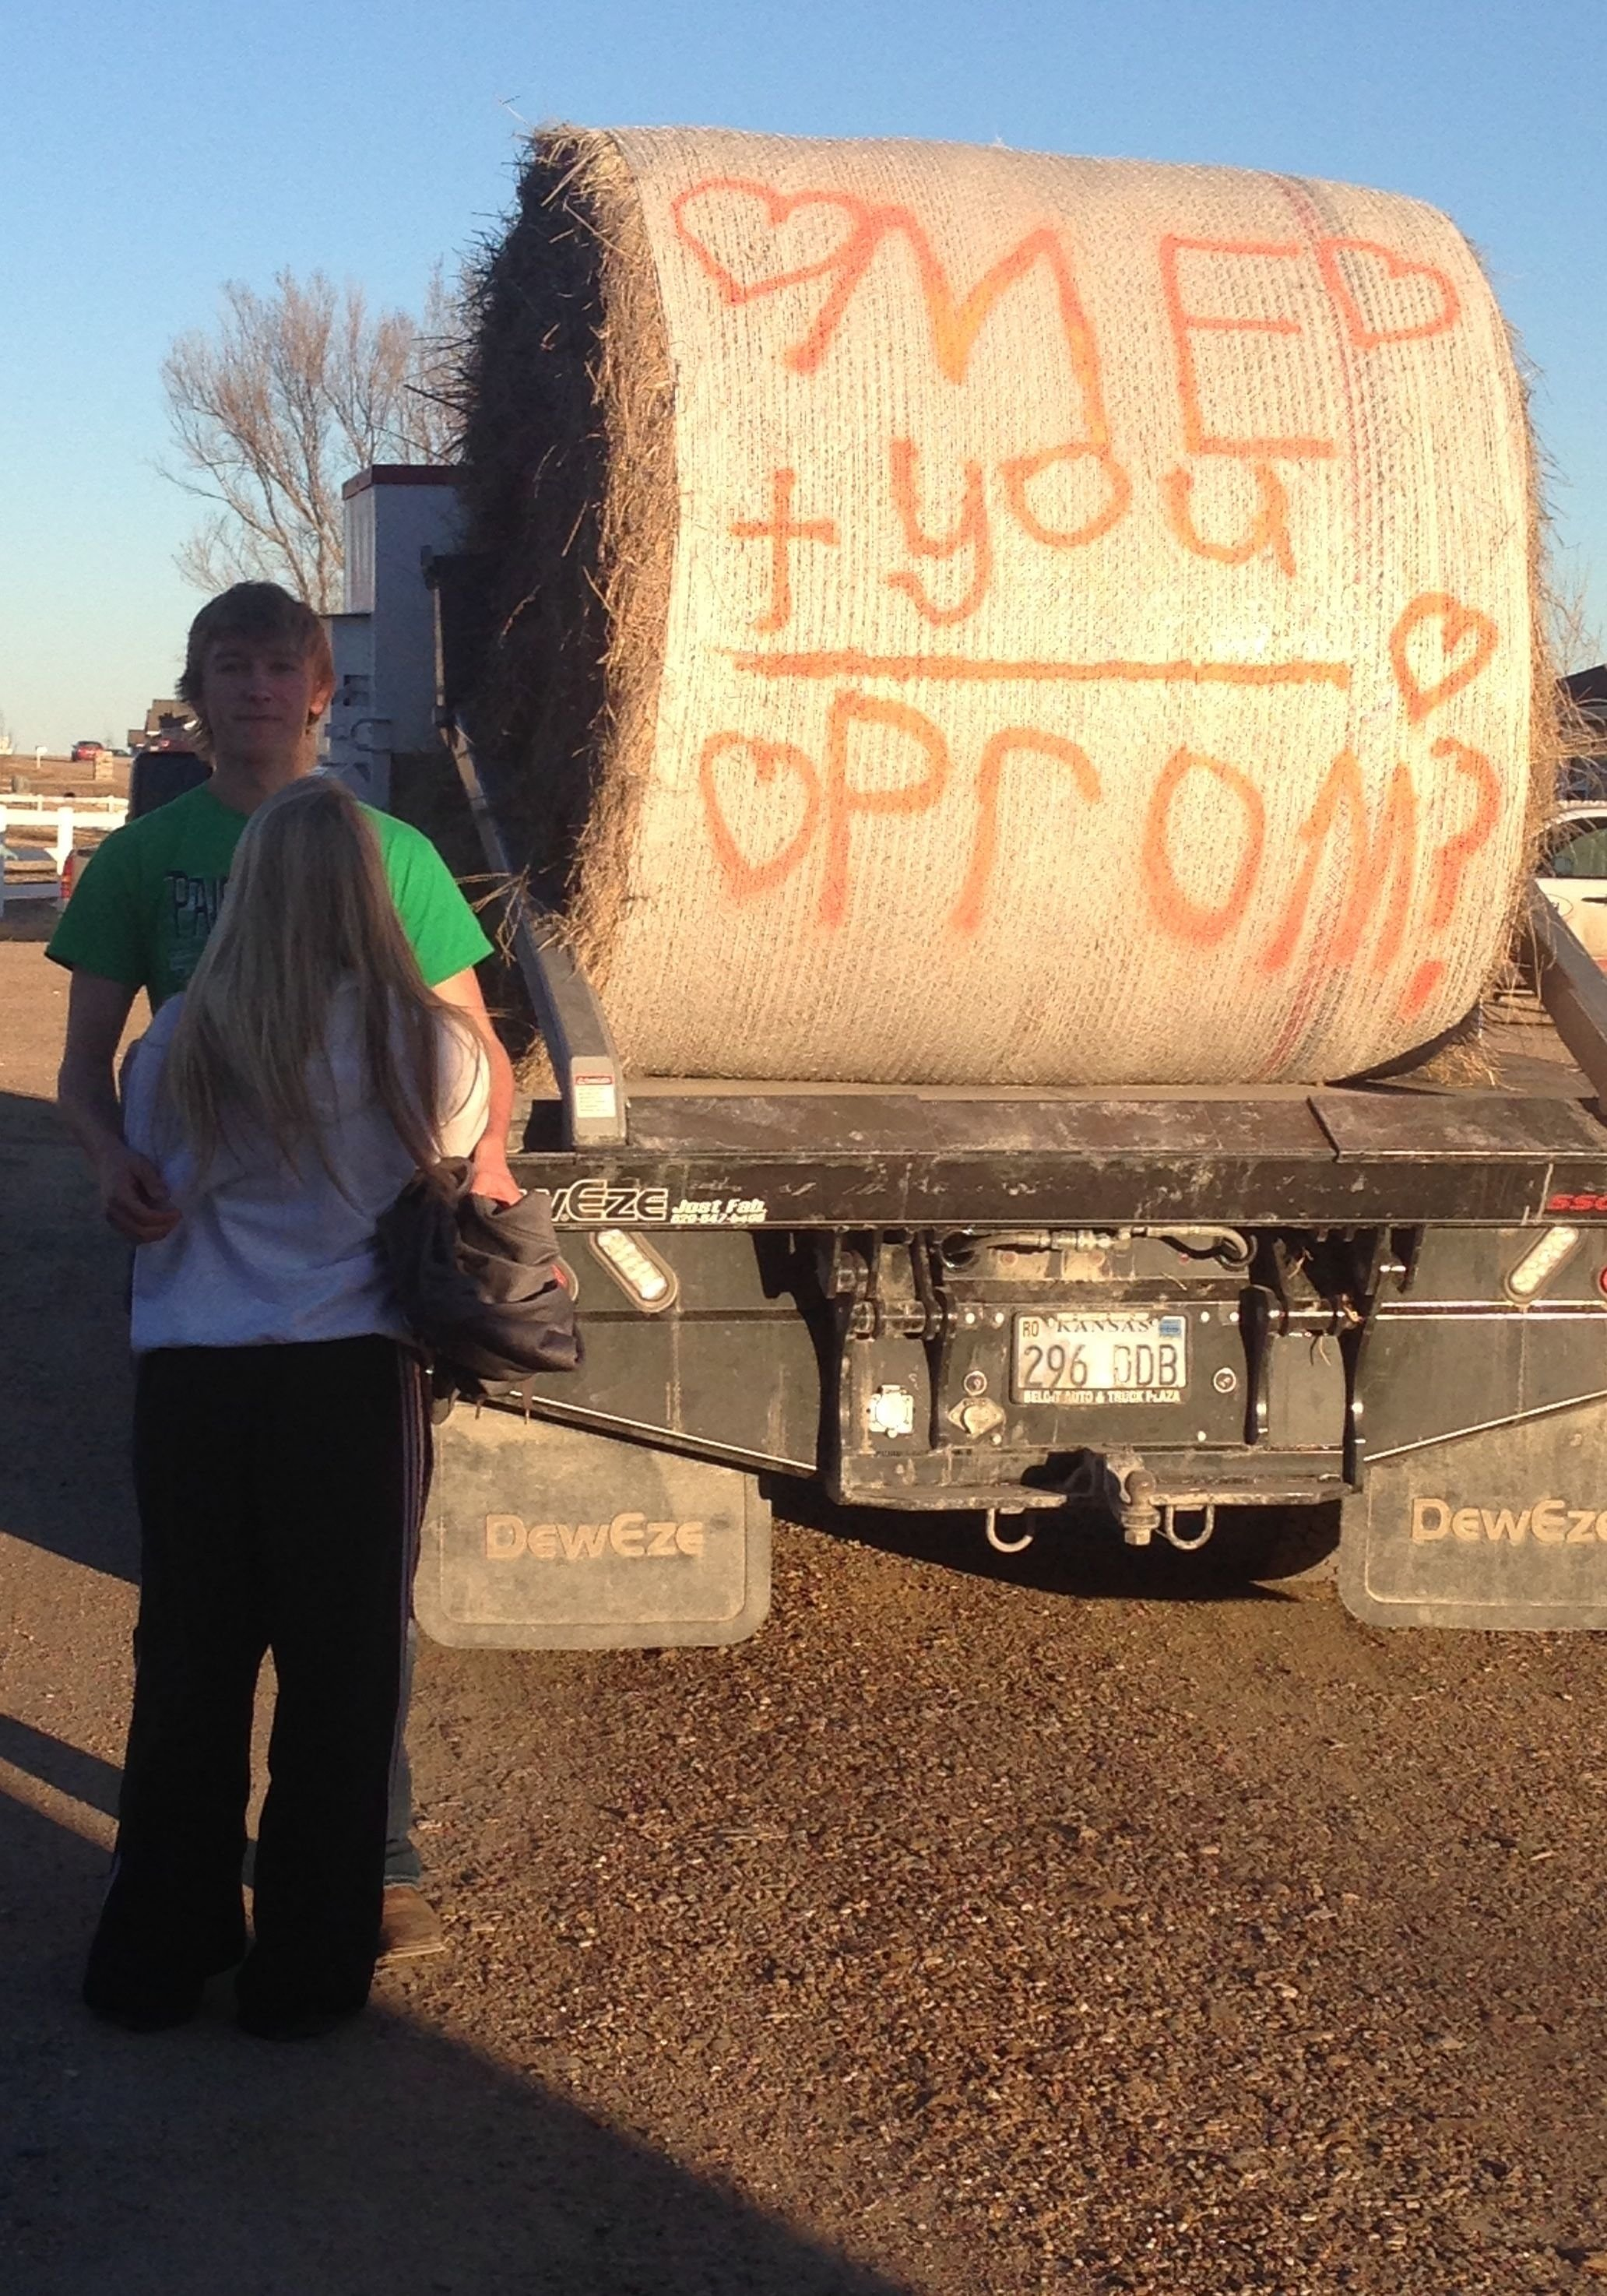 10 Nice Prom Ideas To Ask A Girl idea for asking a girl to prom farmer style too cute prom proposal 2021